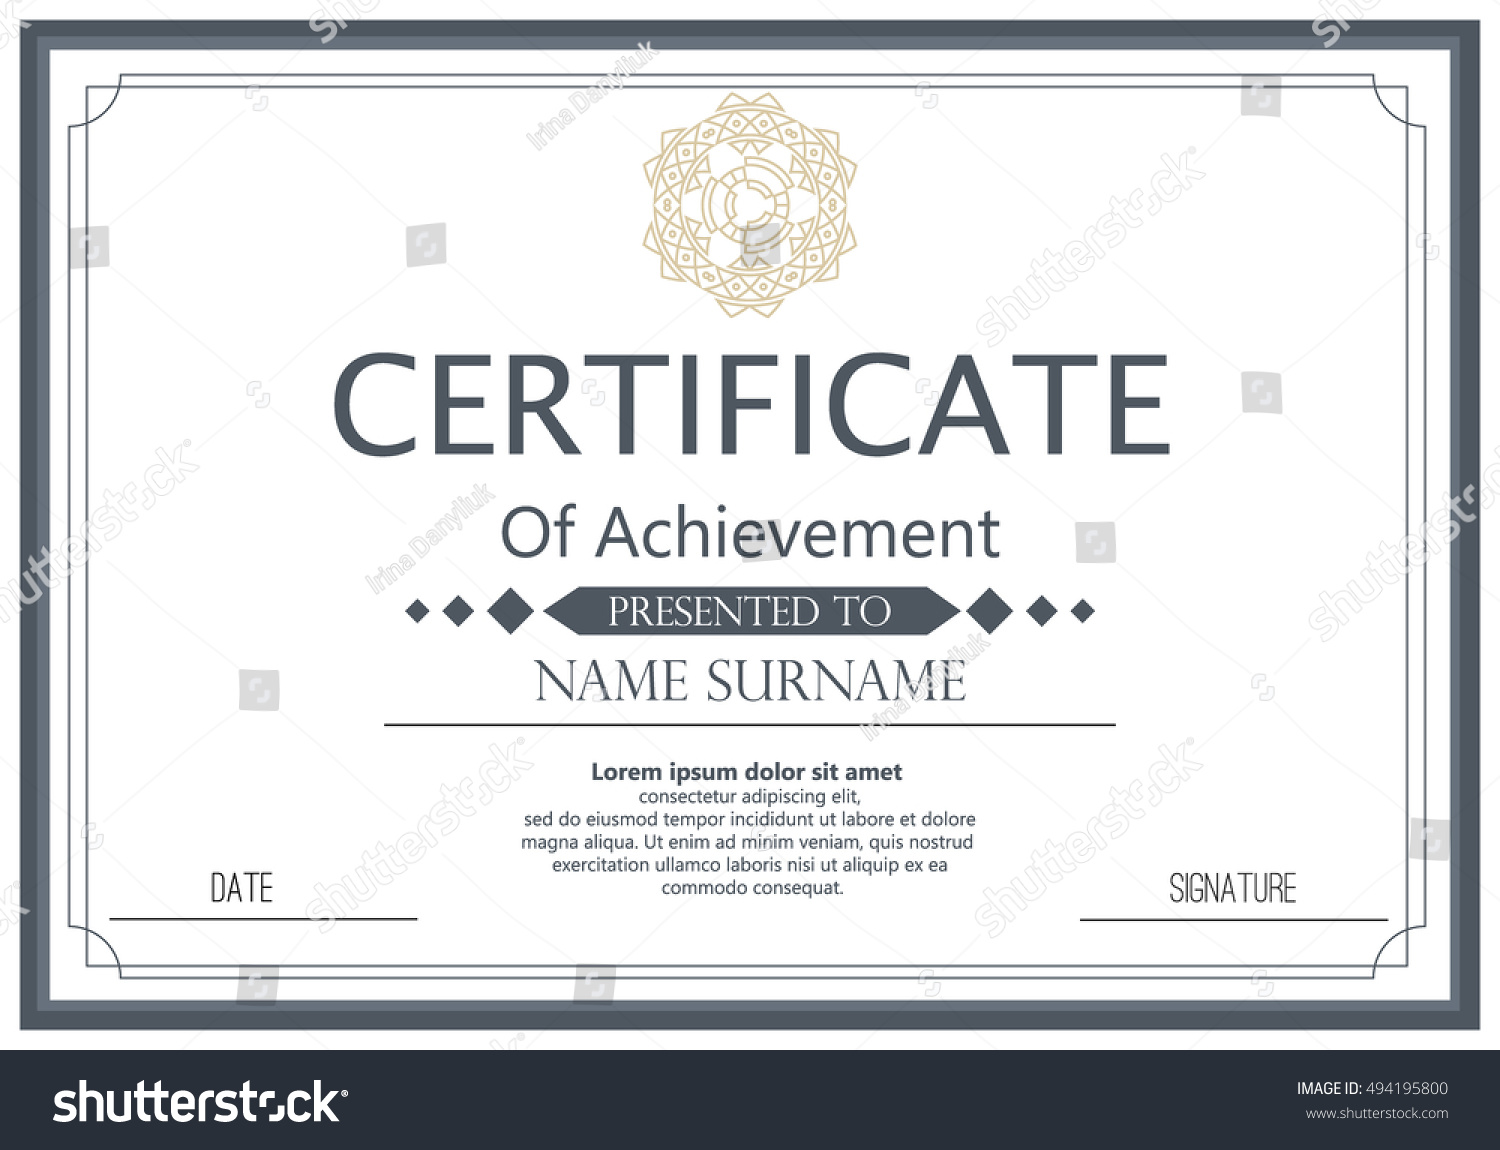 Vector certificate template vector award graduation stock vector vector certificate template vector award graduation certificate achievement success template border business paper coupon xflitez Choice Image